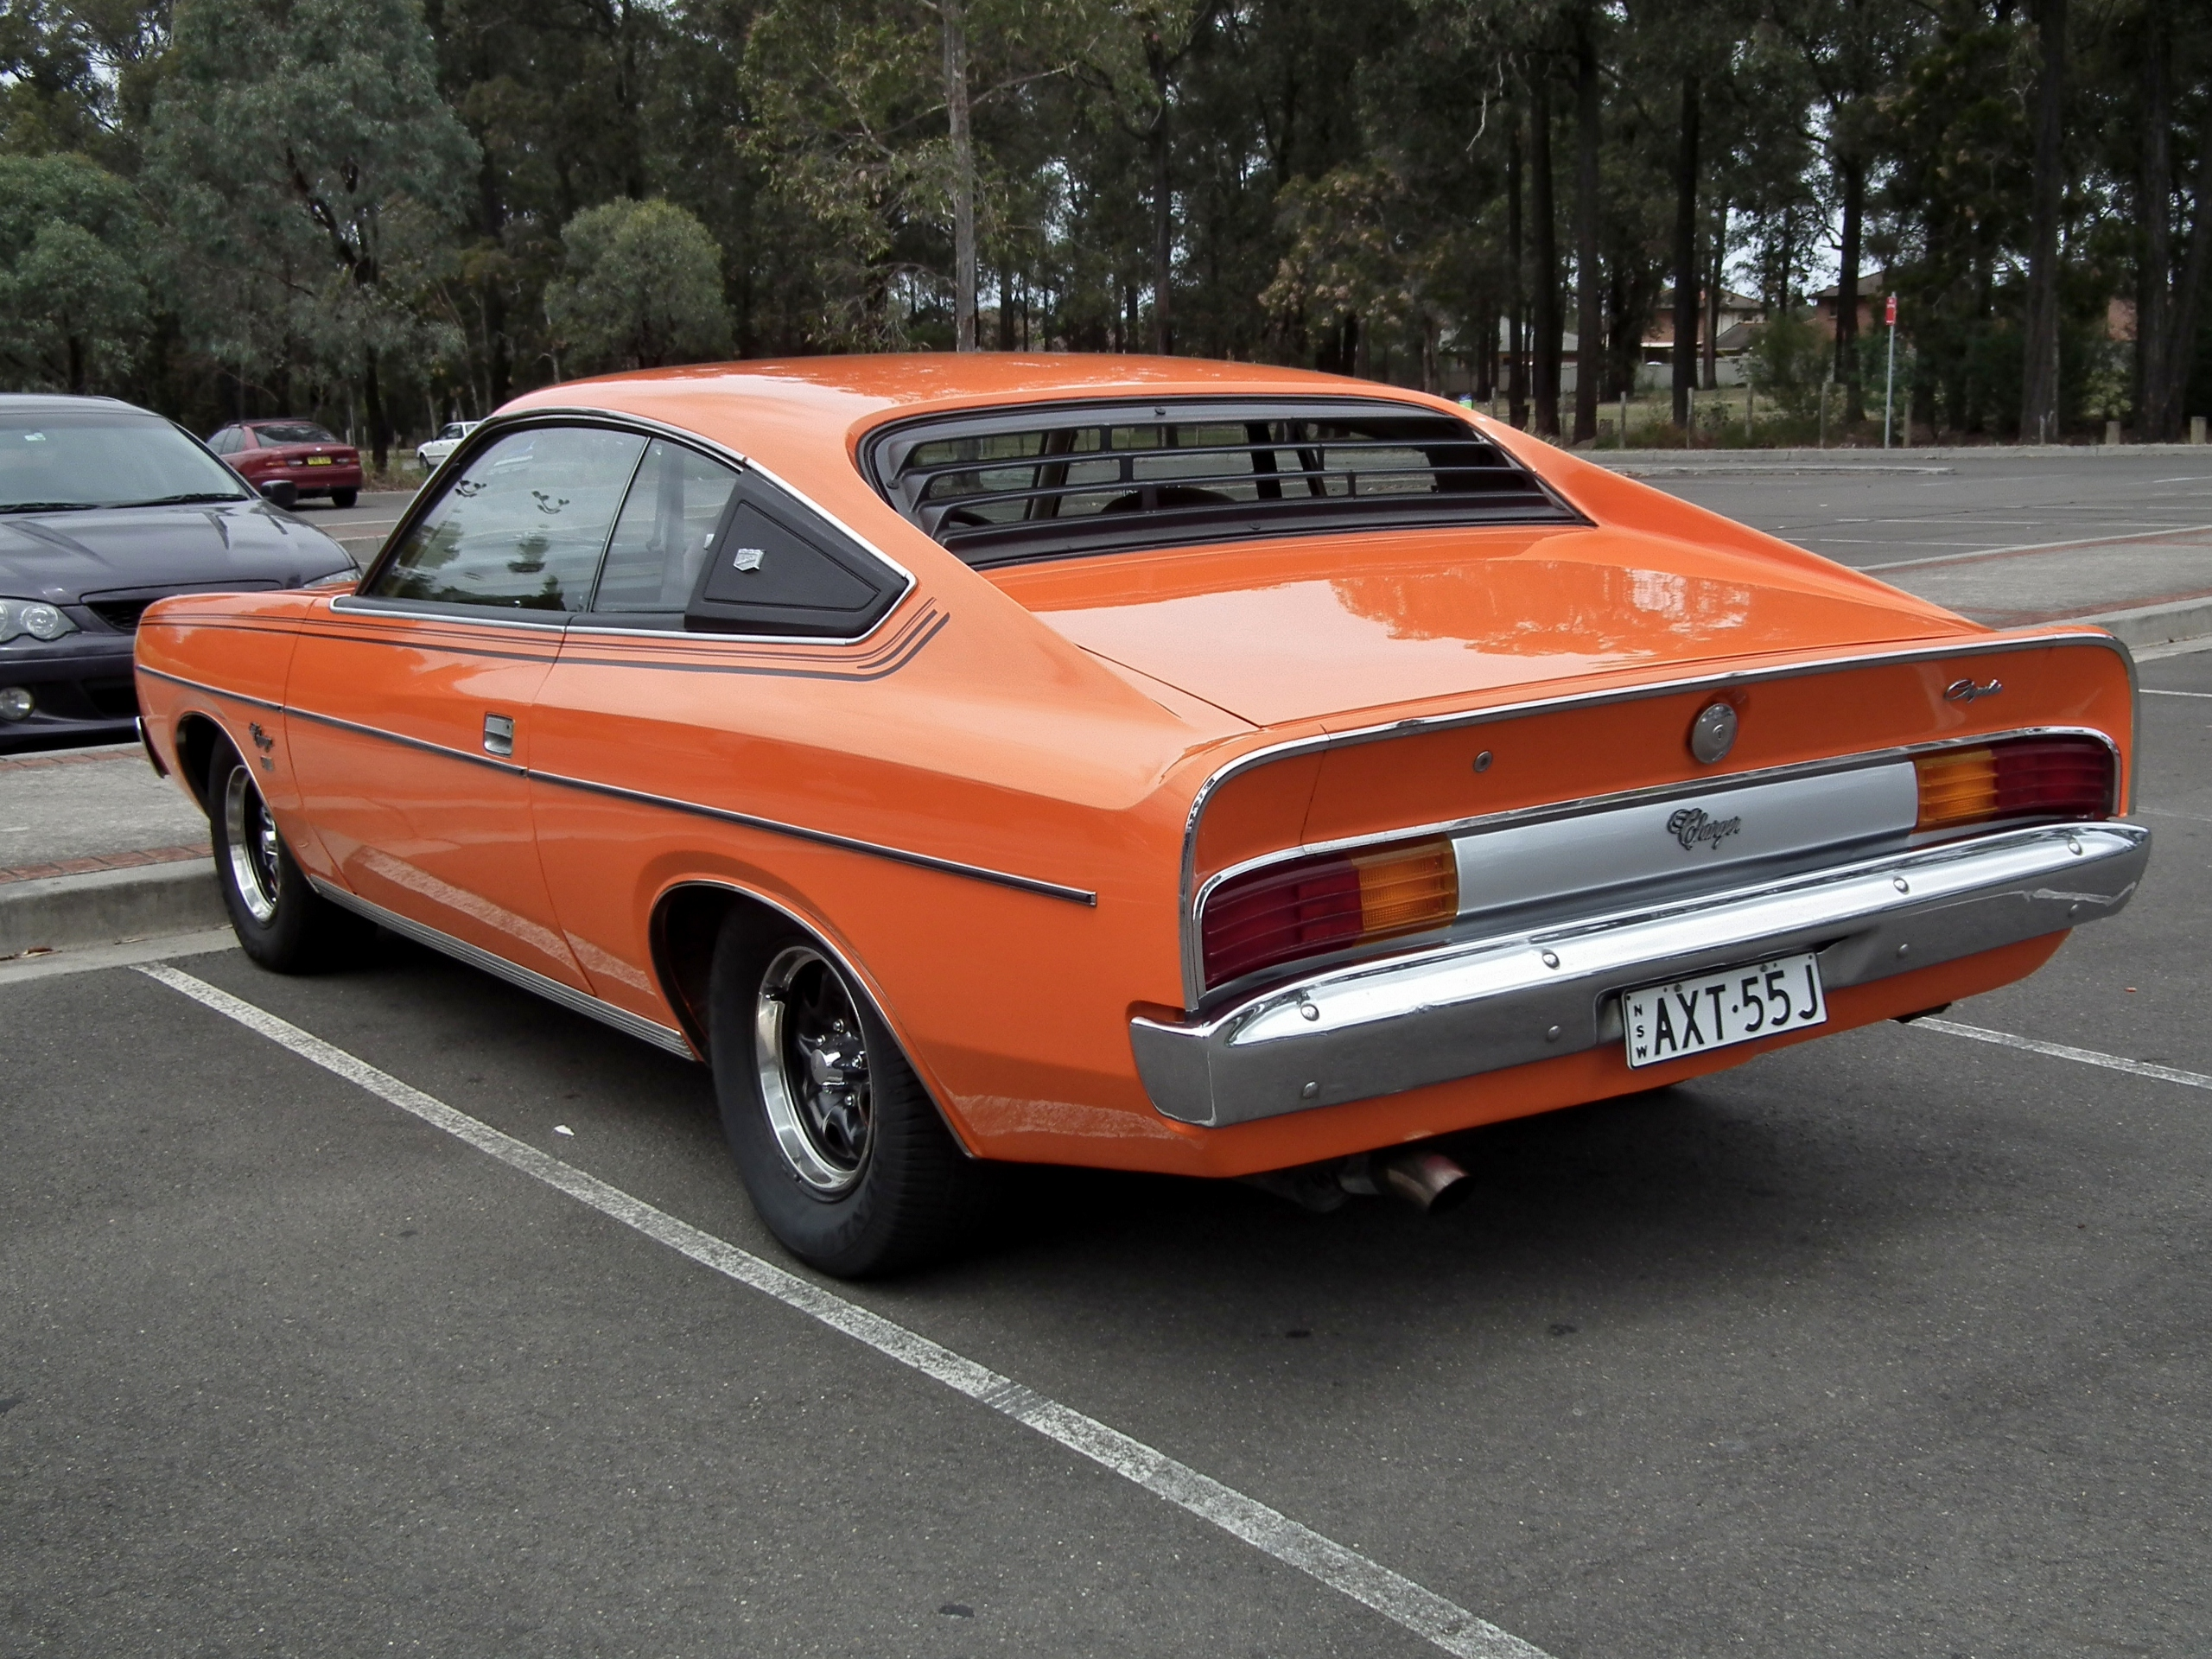 File 1977 Chrysler Cl Valiant Charger 770 Coupe